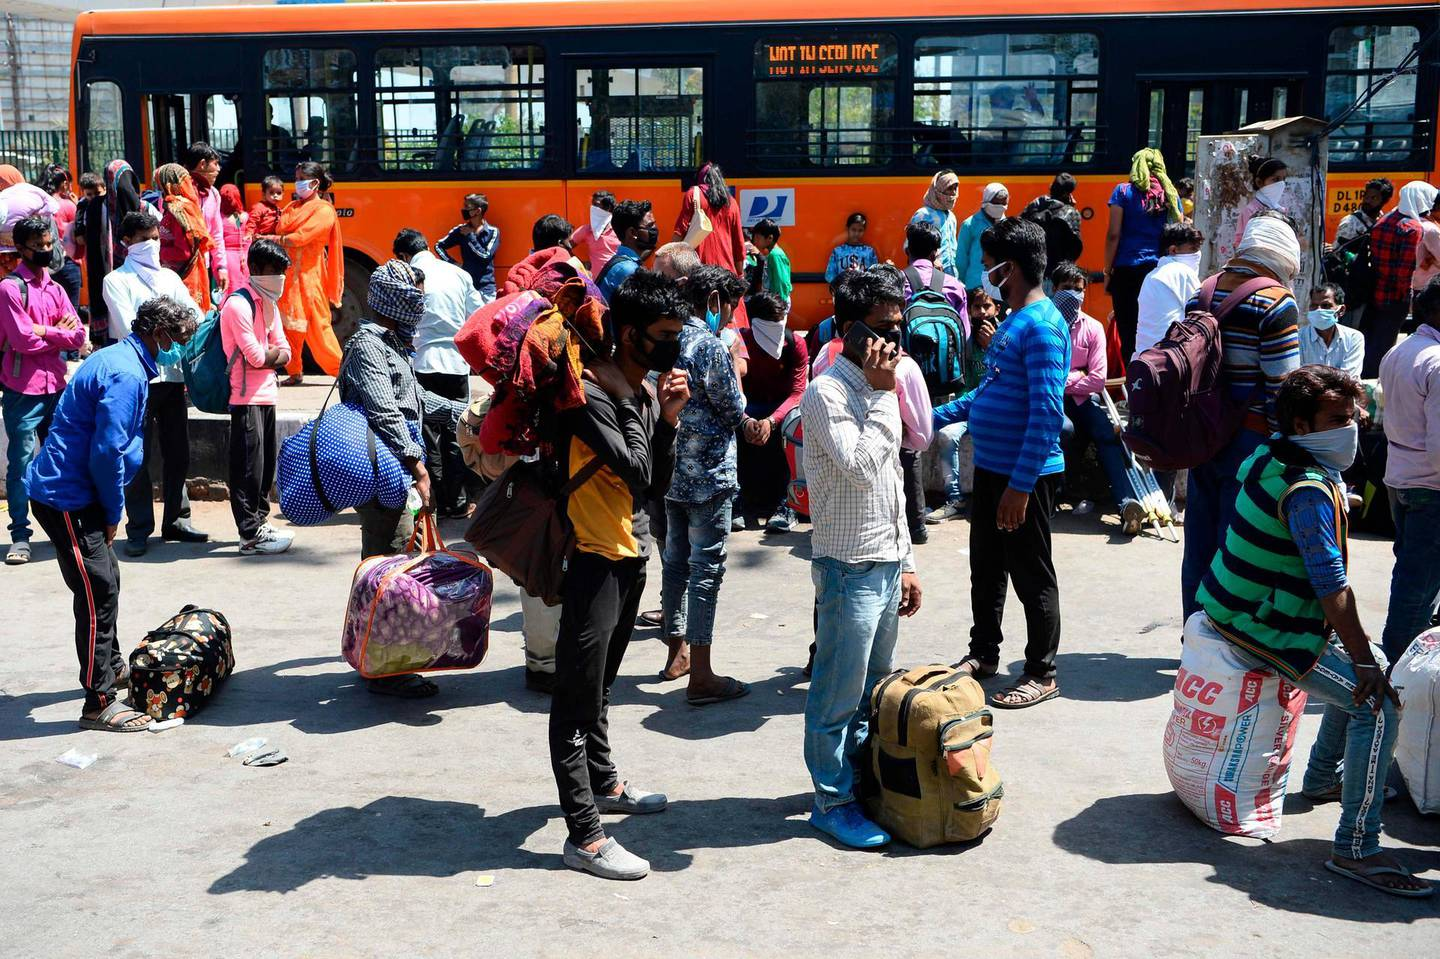 Migrant workers and their family members gather outside Anand Vihar bus terminal as they leave India's capital for their homes during a government-imposed nationwide lockdown as a preventive measure against the COVID-19 coronavirus, in New Delhi on March 29, 2020. / AFP / SAJJAD HUSSAIN